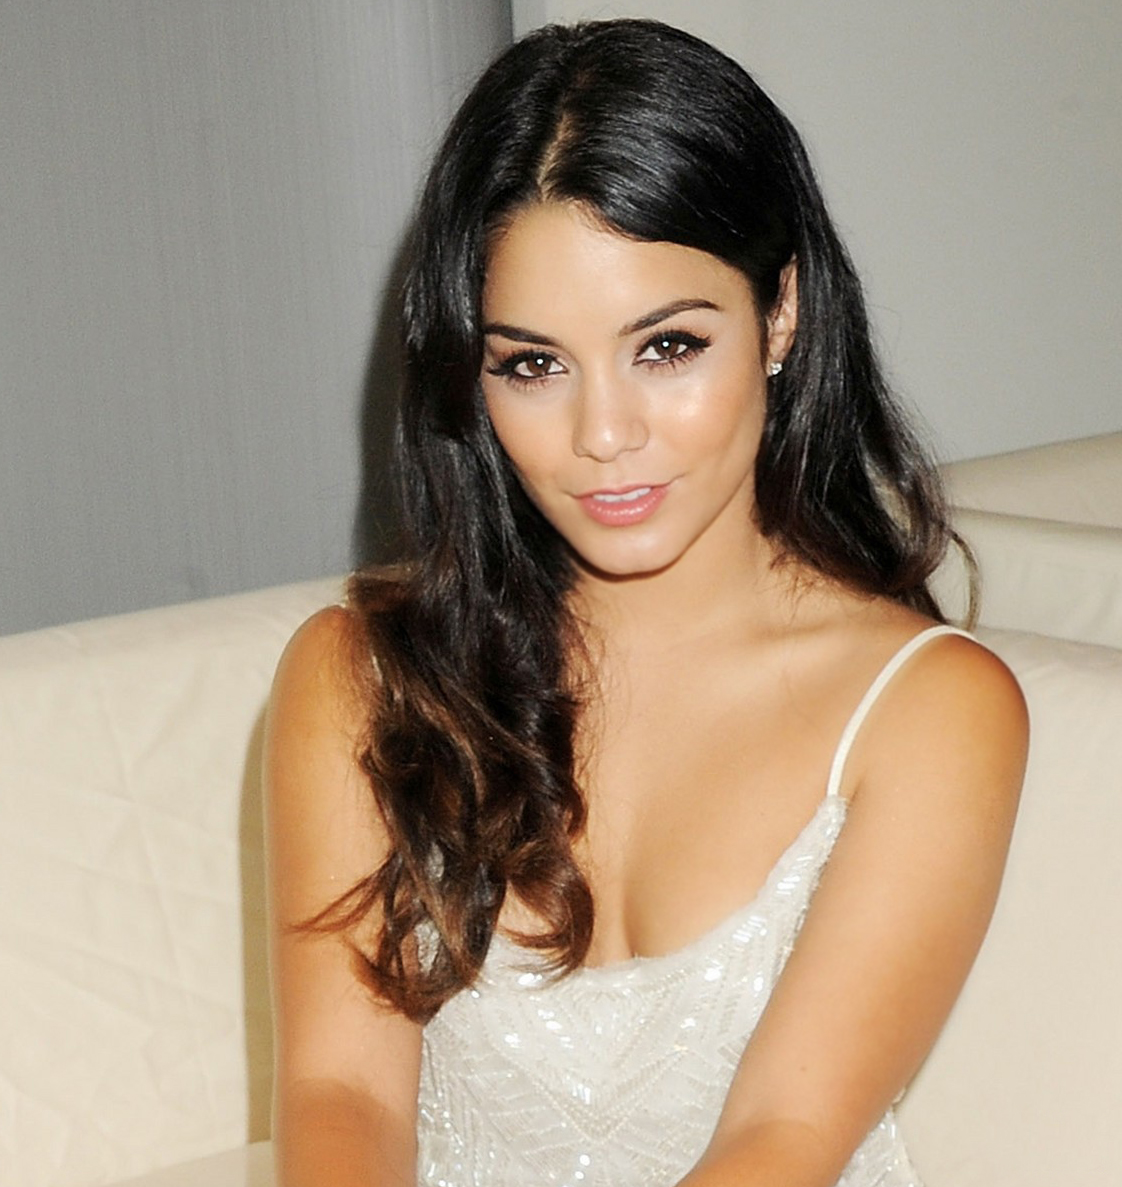 Hot and Gorgeous Vanessa Hudgens 2012 Photo Gallery | Hot ...